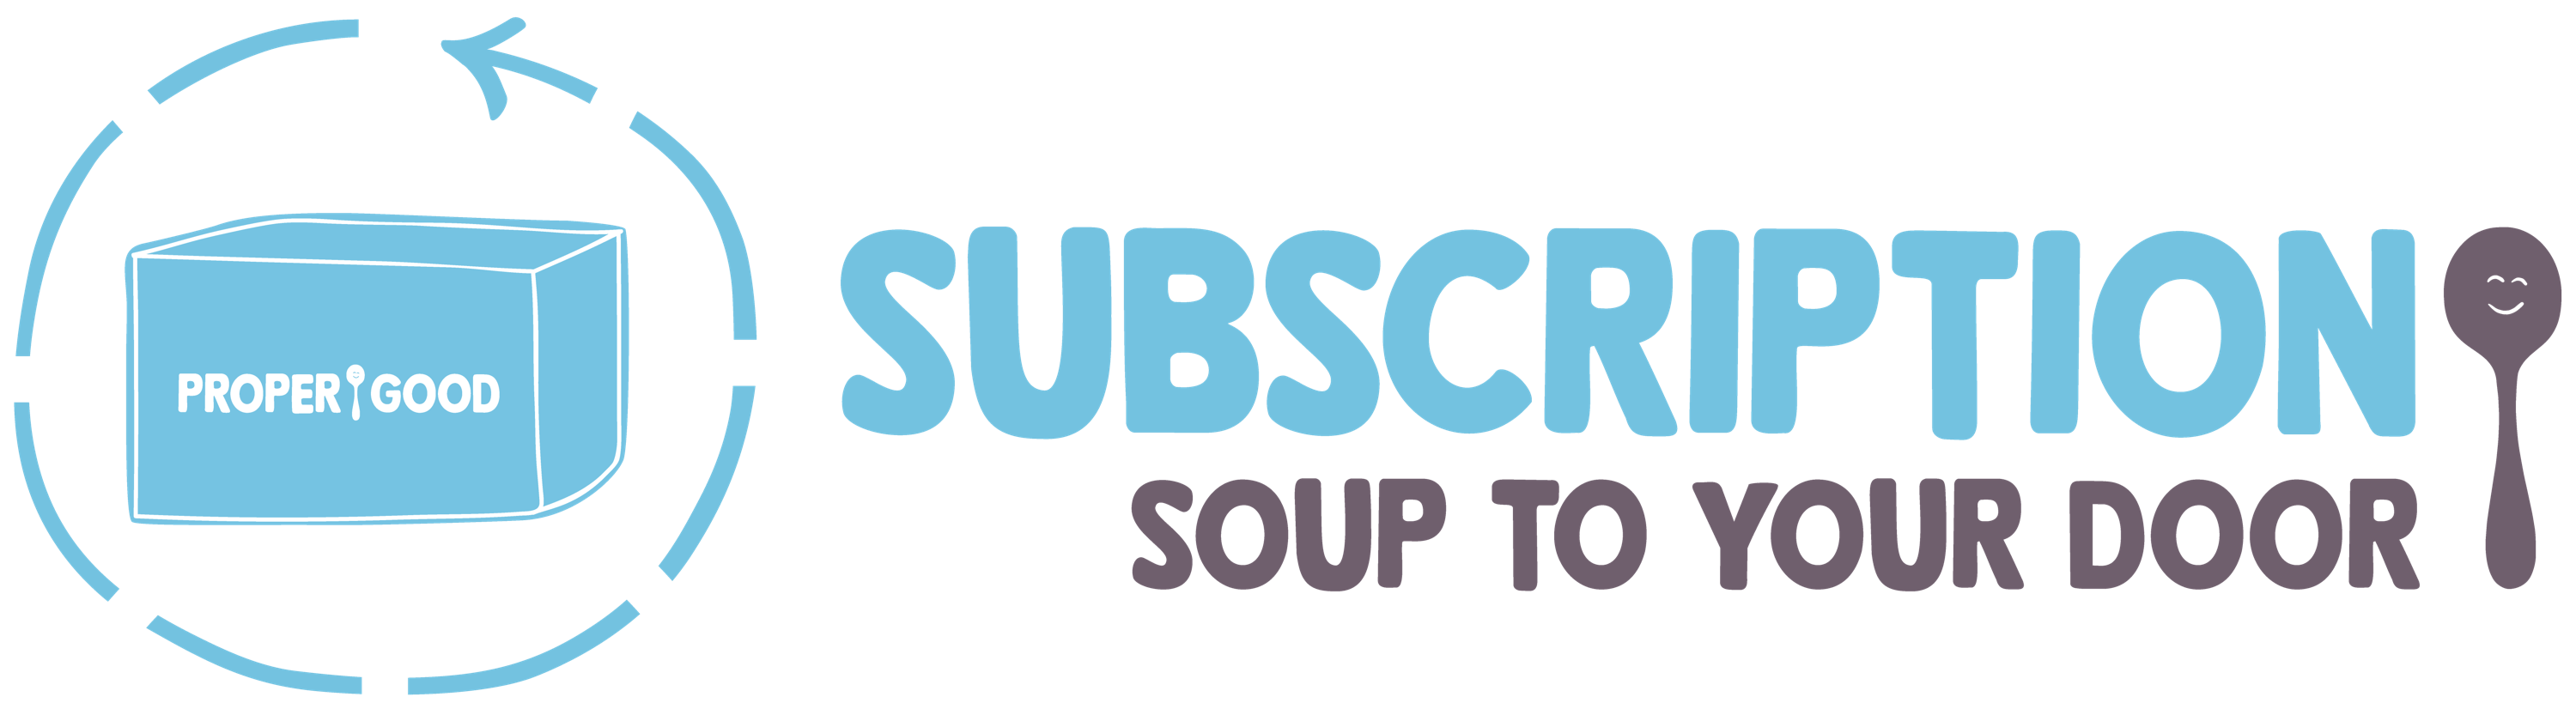 Proper Good Subscription Soup to You Door 15% off